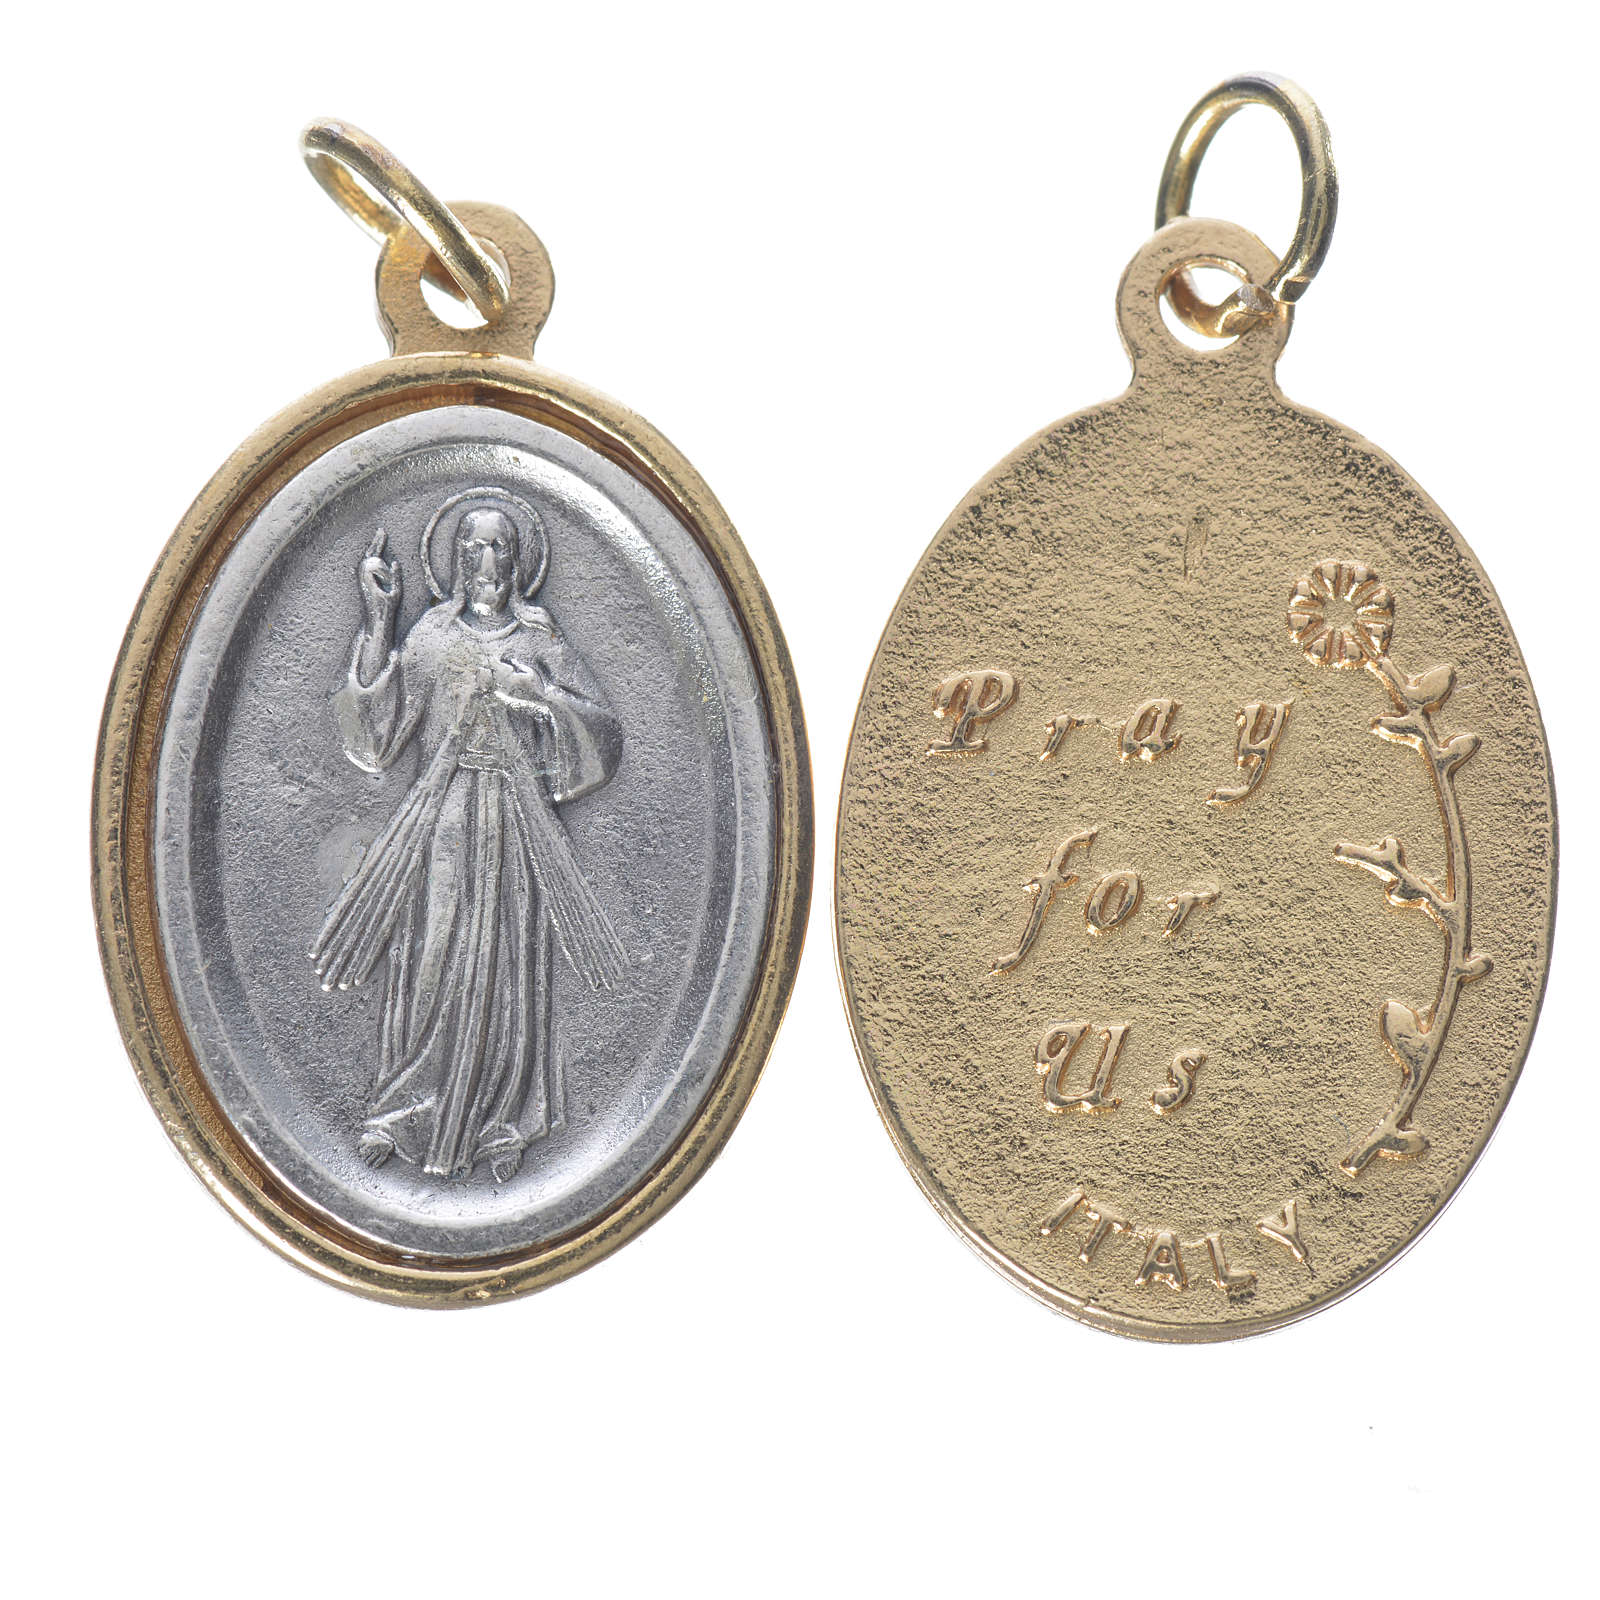 Merciful Jesus silver and golden medal 2.5cm 4